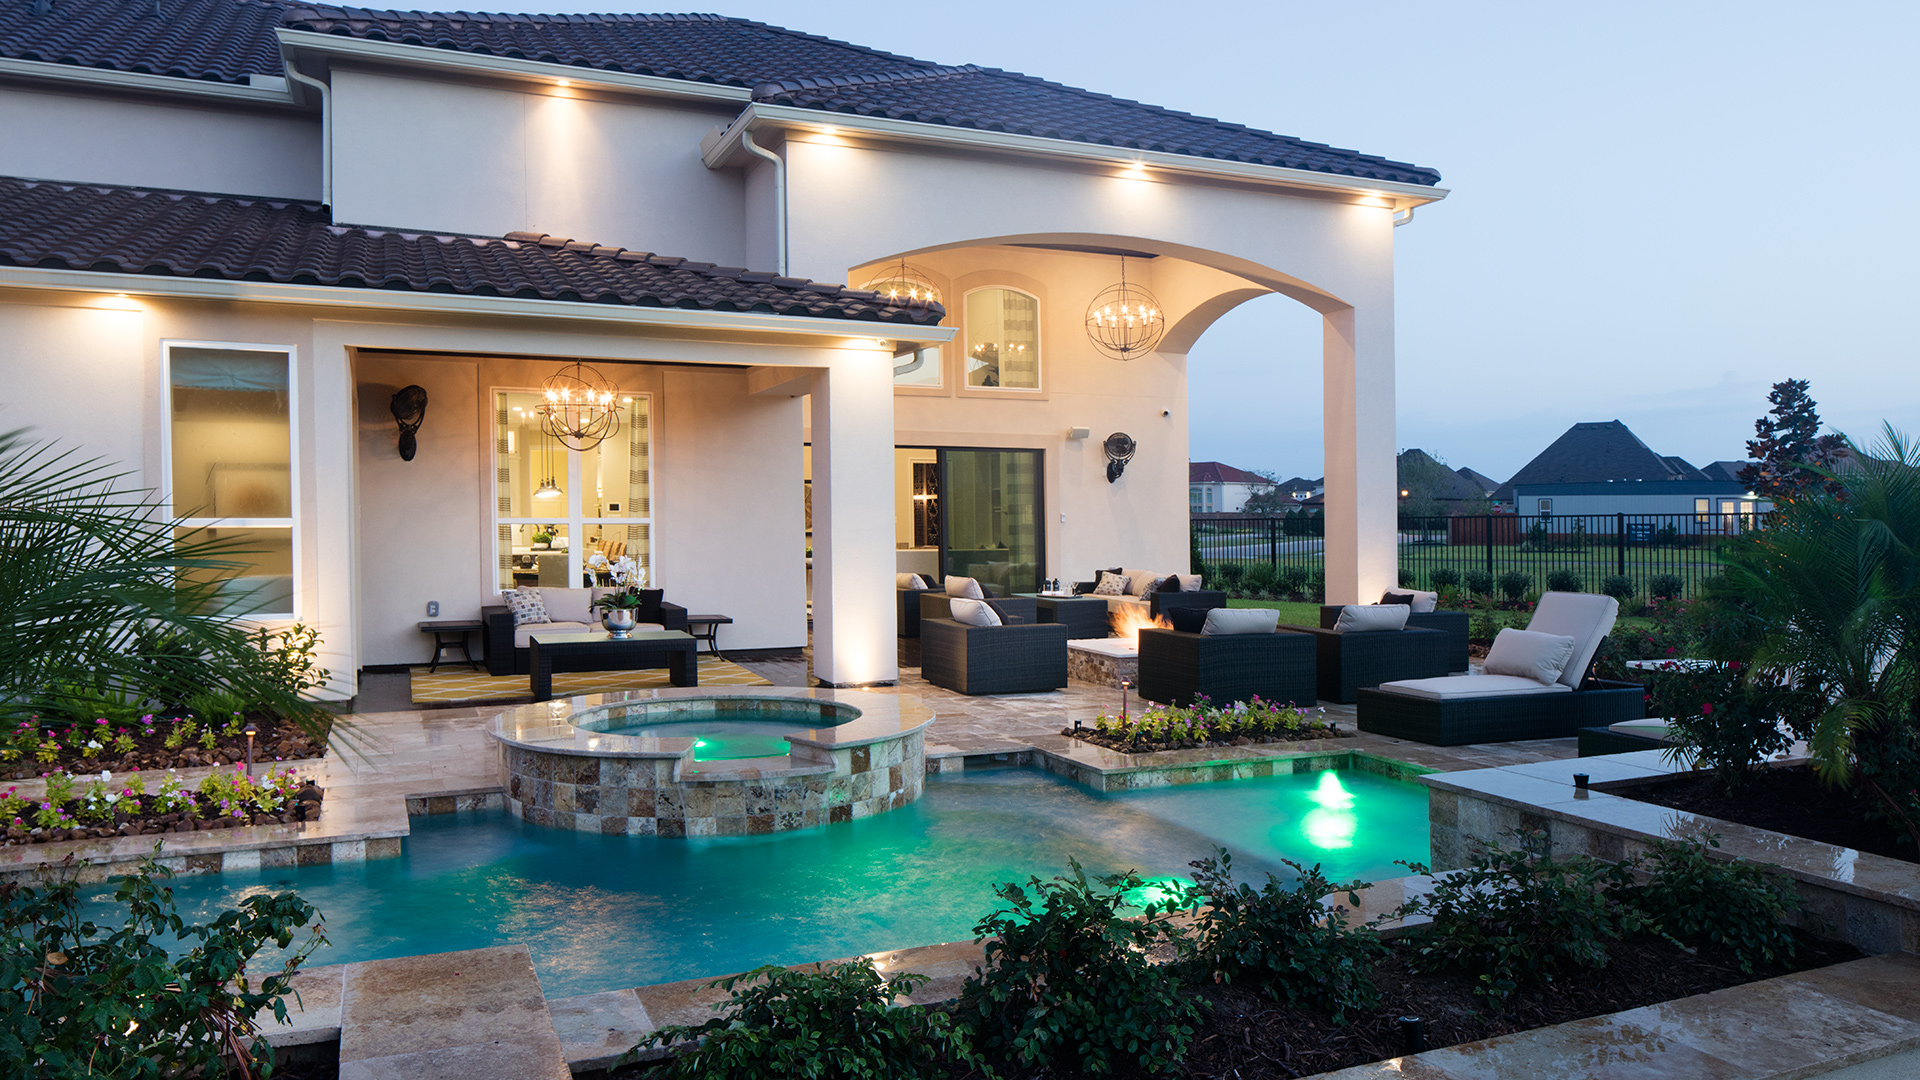 Katy Tx New Homes For Sale The Reserve At Katy The Estates